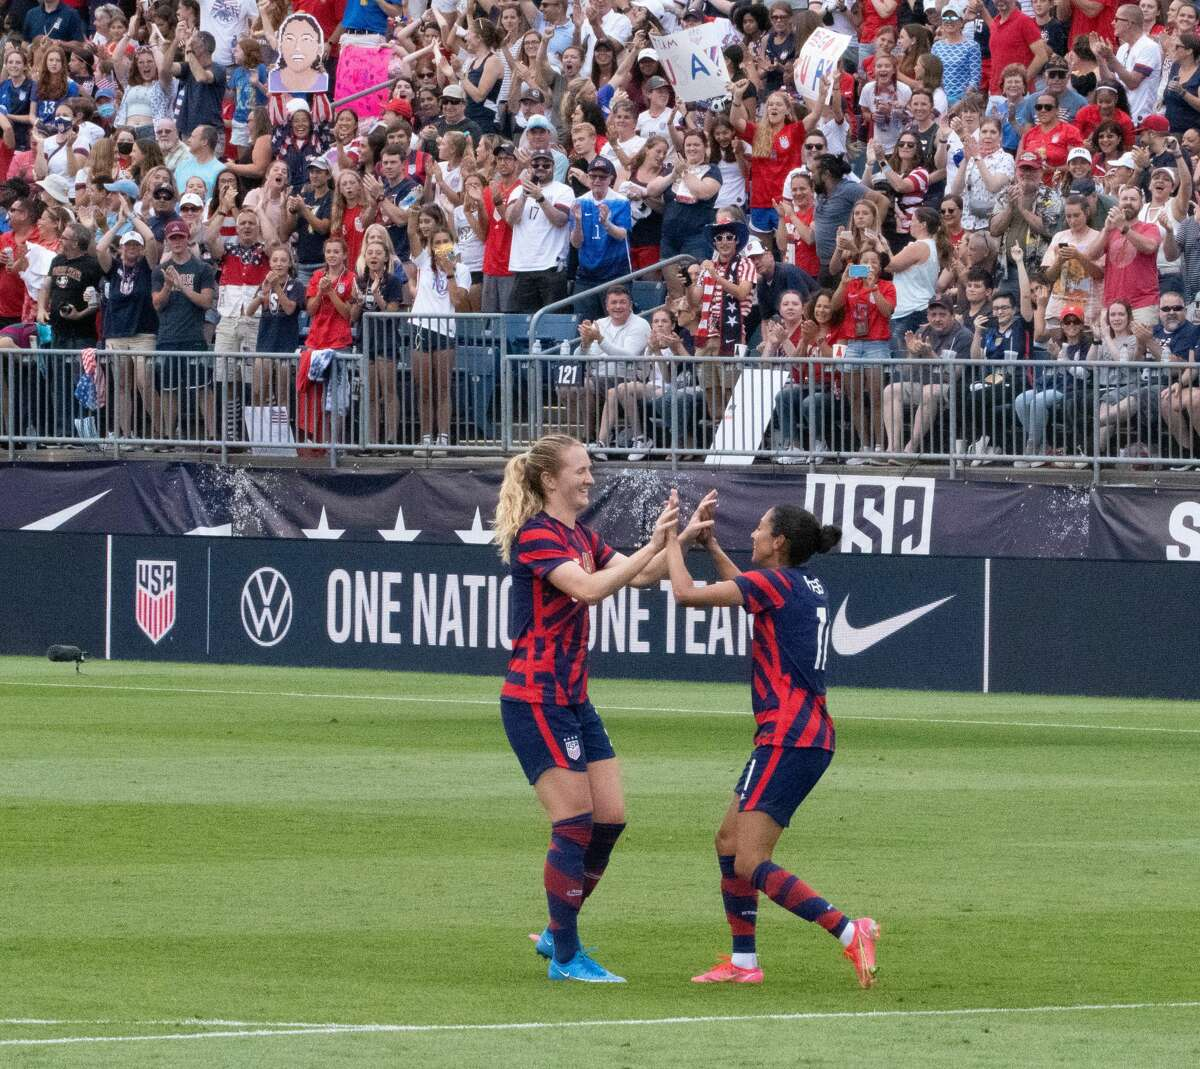 US Women's Soccer National Team members Kristie Mewis and Christen Press celebrate a goal in a Send-Off Series match against Mexico at Pratt & Whitney Stadium in East Hartford, Conn. on Monday, July 5, 2021. The U.S. won 4-0 over Mexico. (Joyce Bassett / Special to the Times Union)